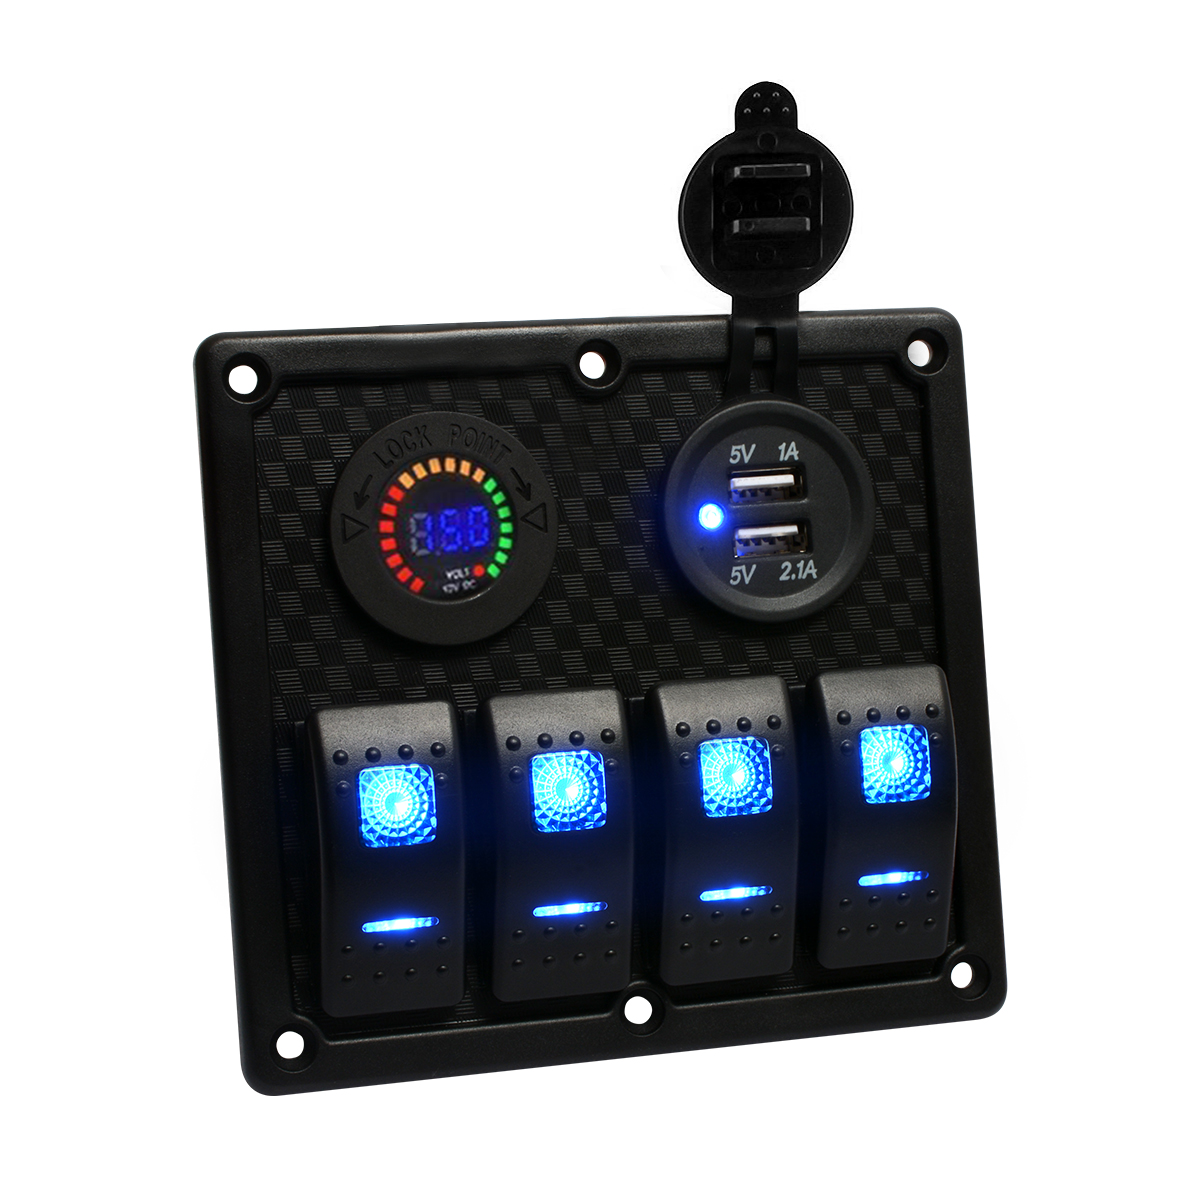 Teqstone Marine Boat Rocker Switch Panel 4 Gang With Double Grade Wiring Diagrams Panels